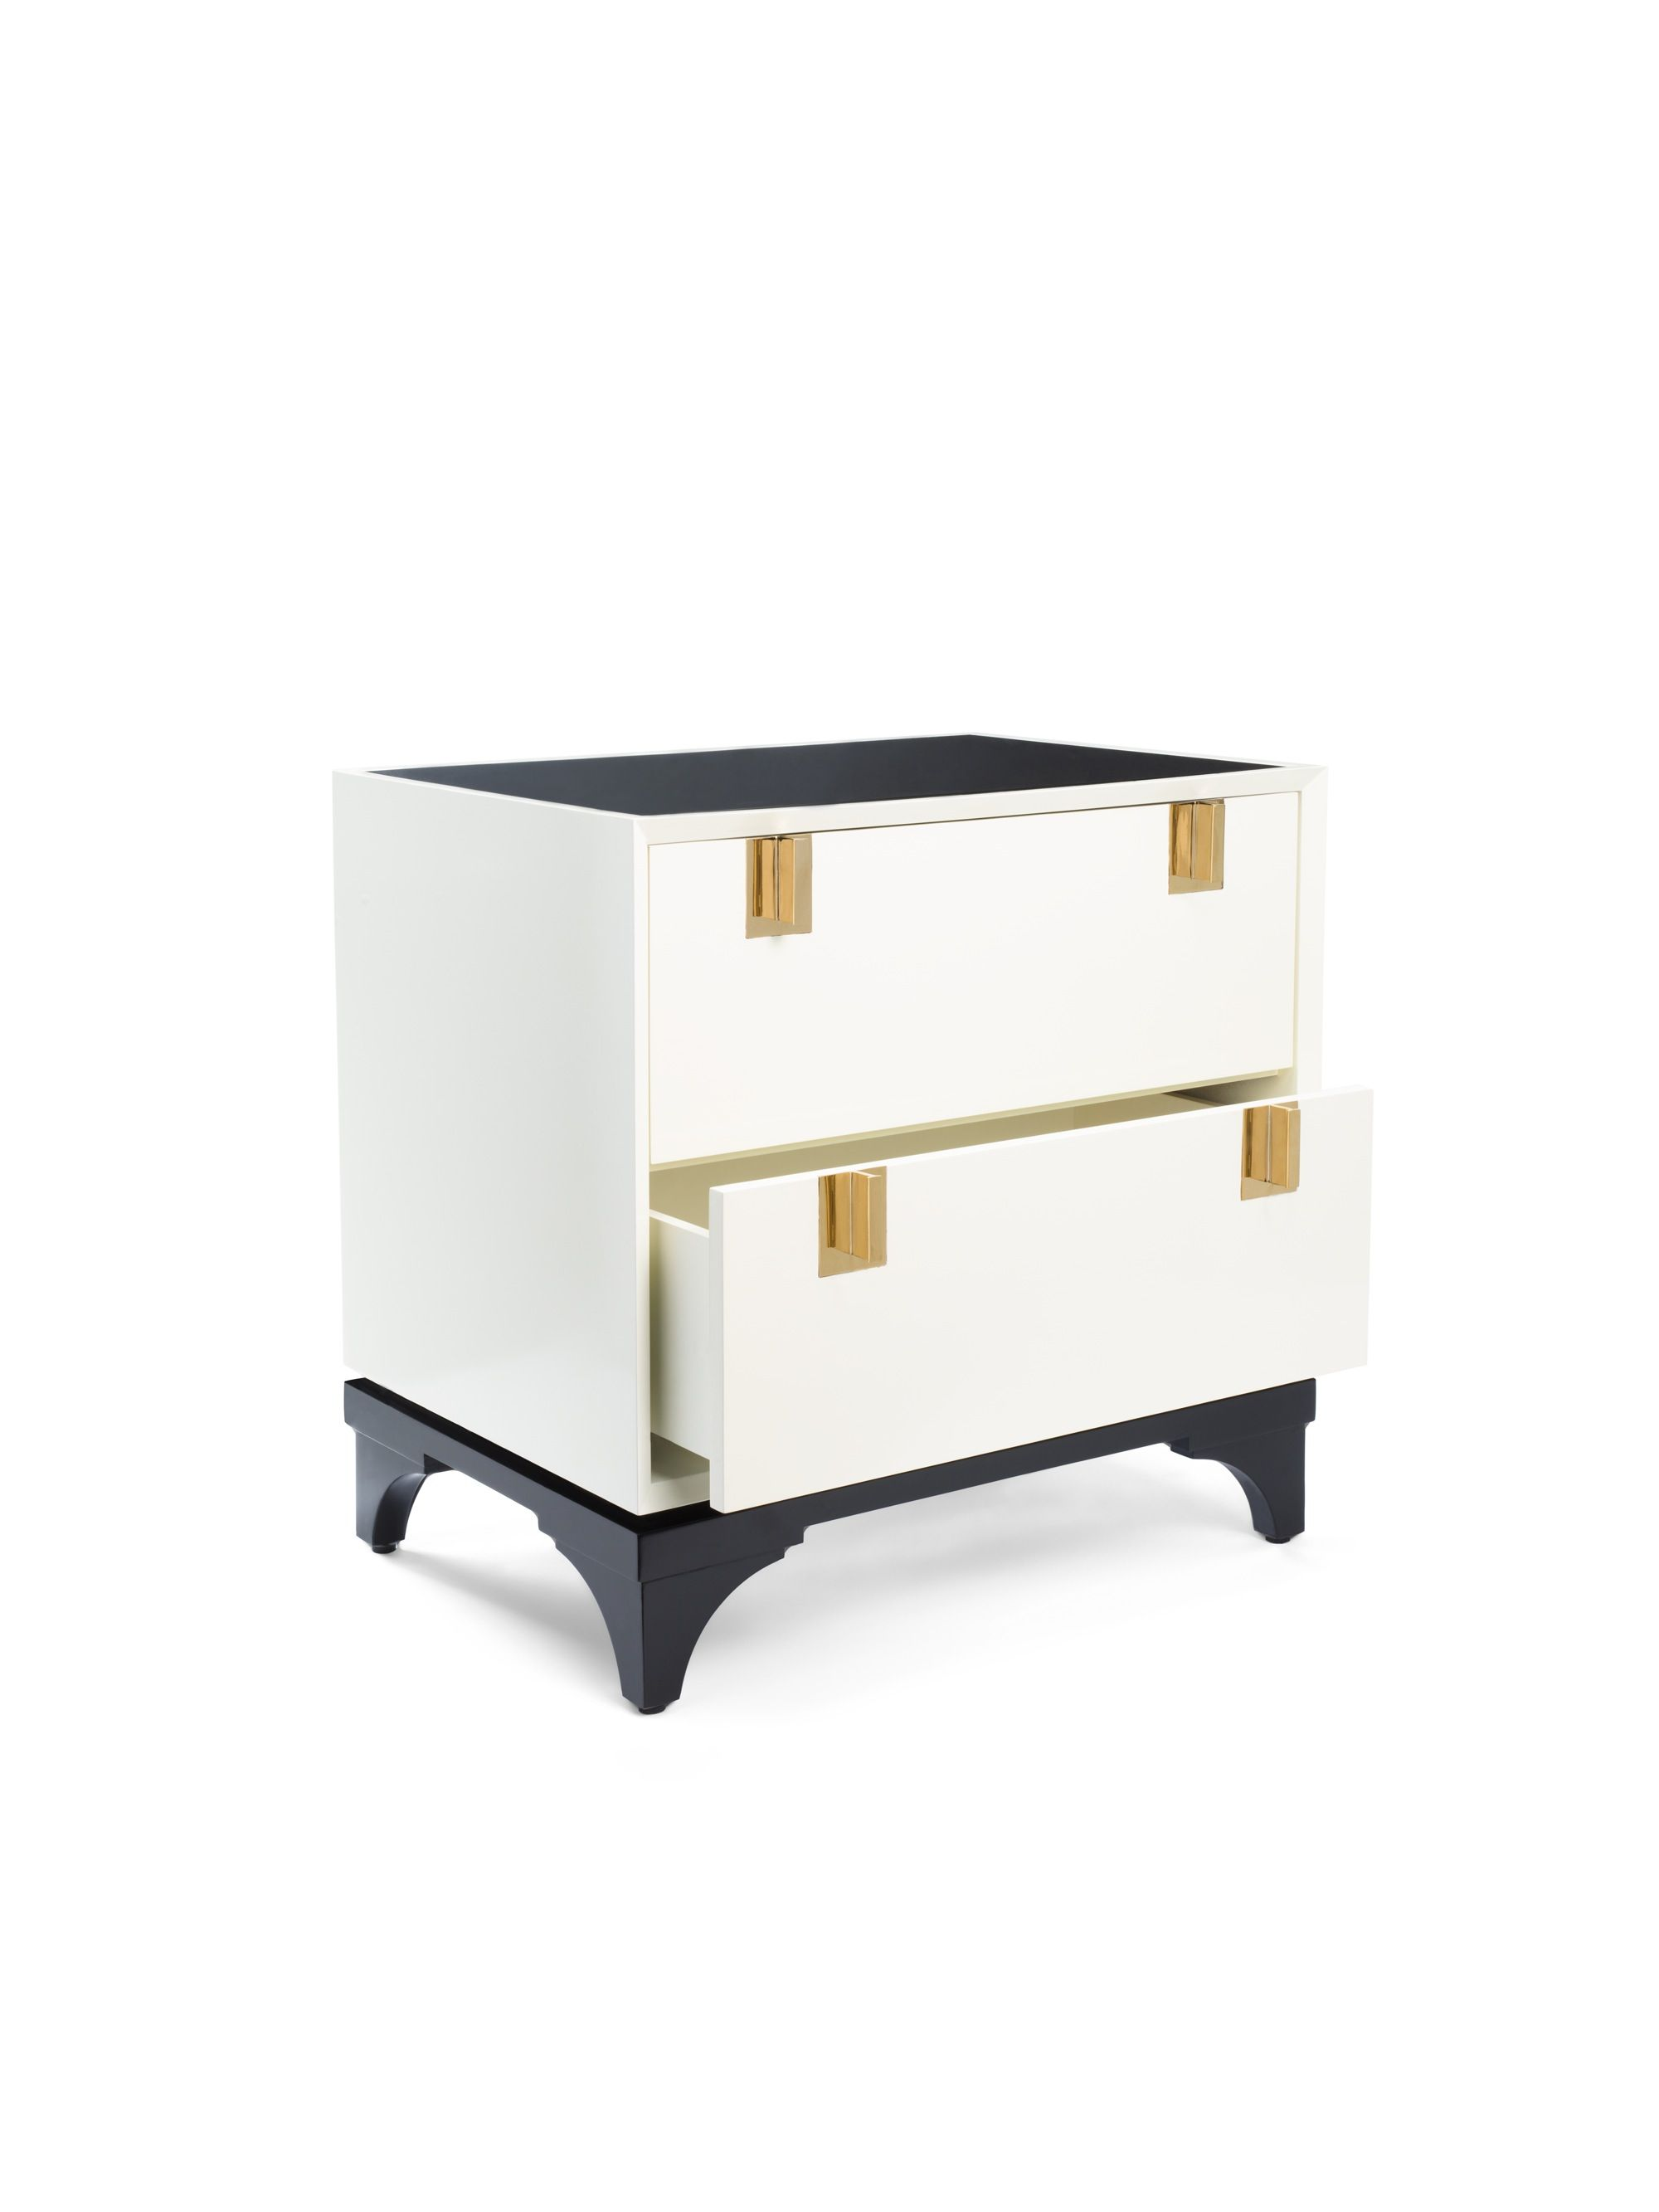 we believe that, no matter how functional, every piece in your home should have personality. like this glossy white chest with brass accents--it's a place to display curiosities and treasures acquired near and far (and tuck away the rest).